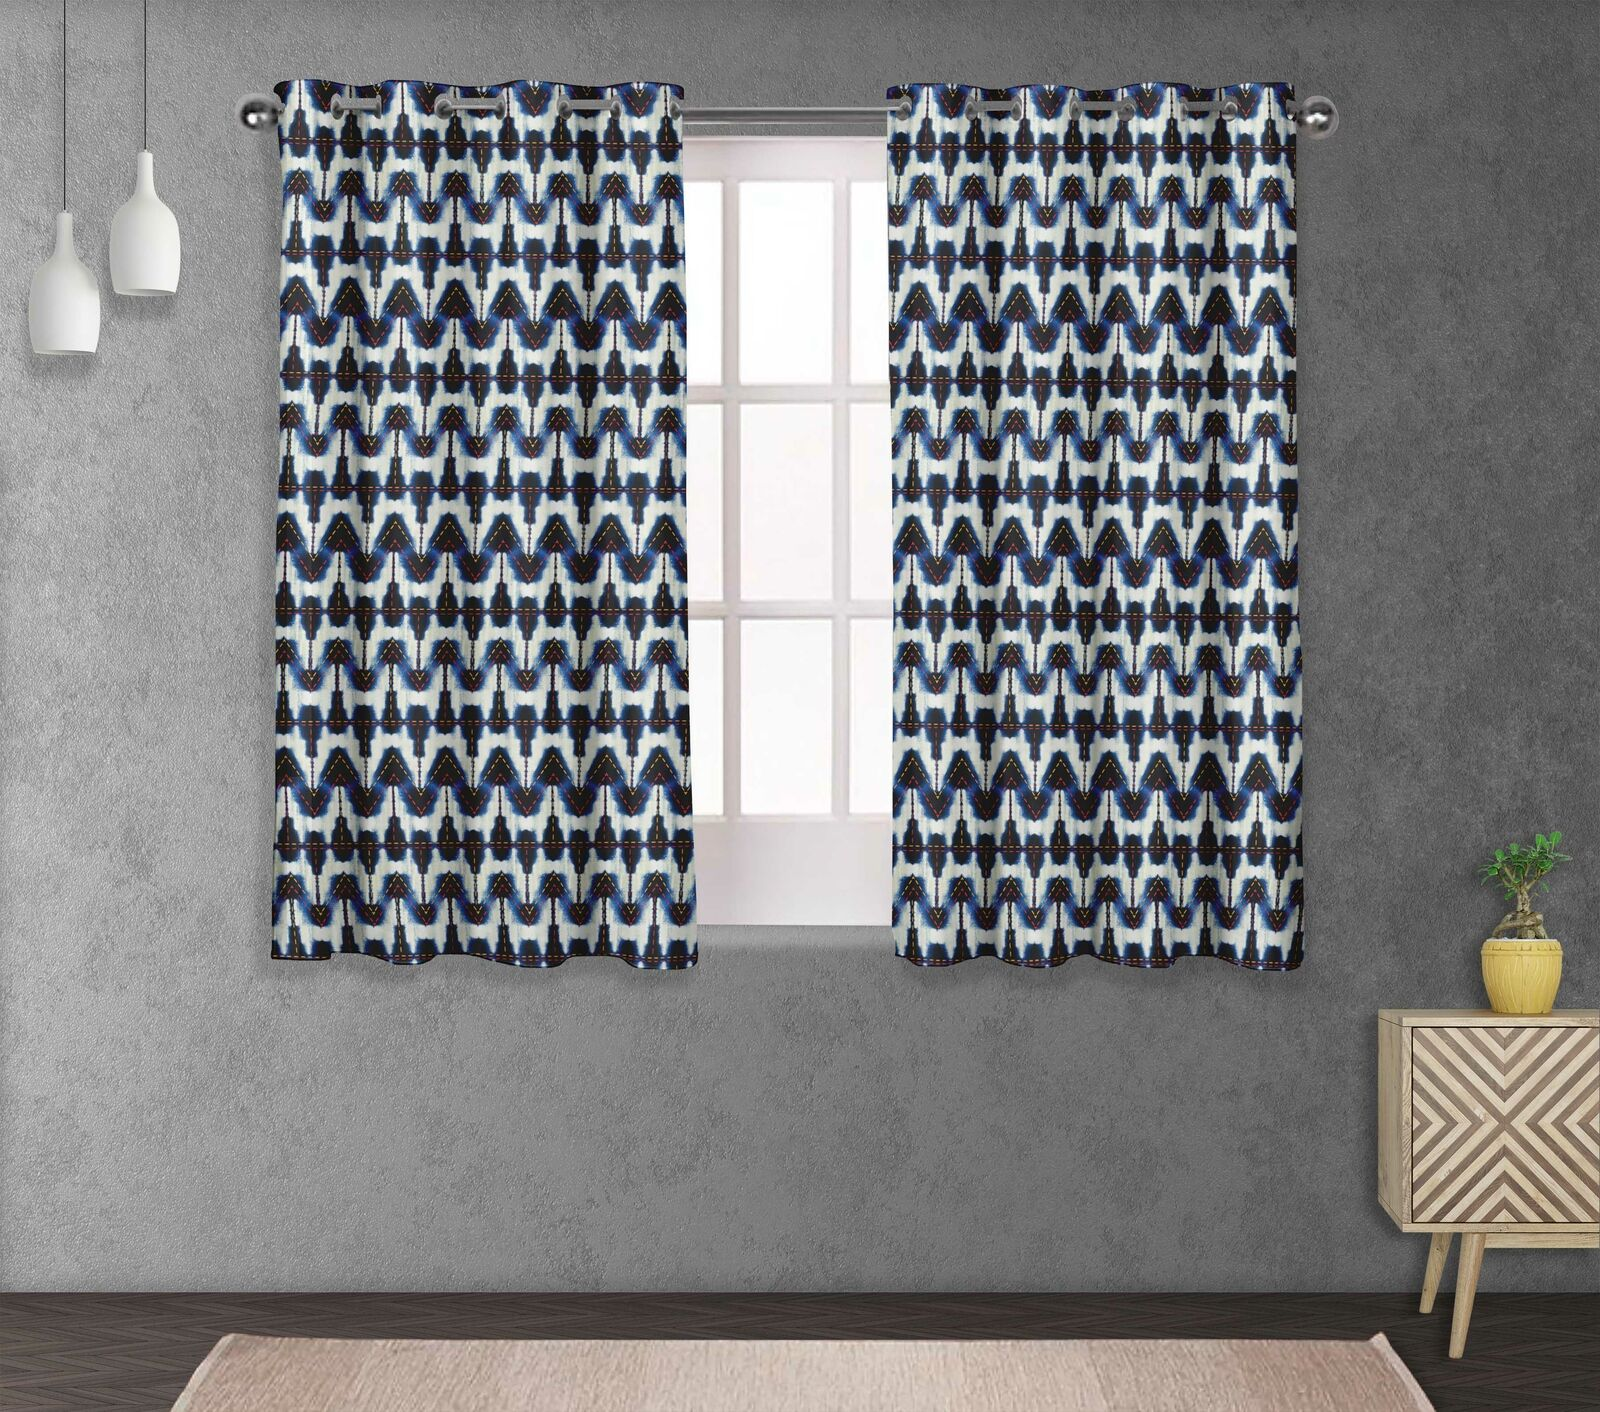 S 4 Sassy Chevron Doble Panel Cortina de tratamiento de ventana-SH-3A